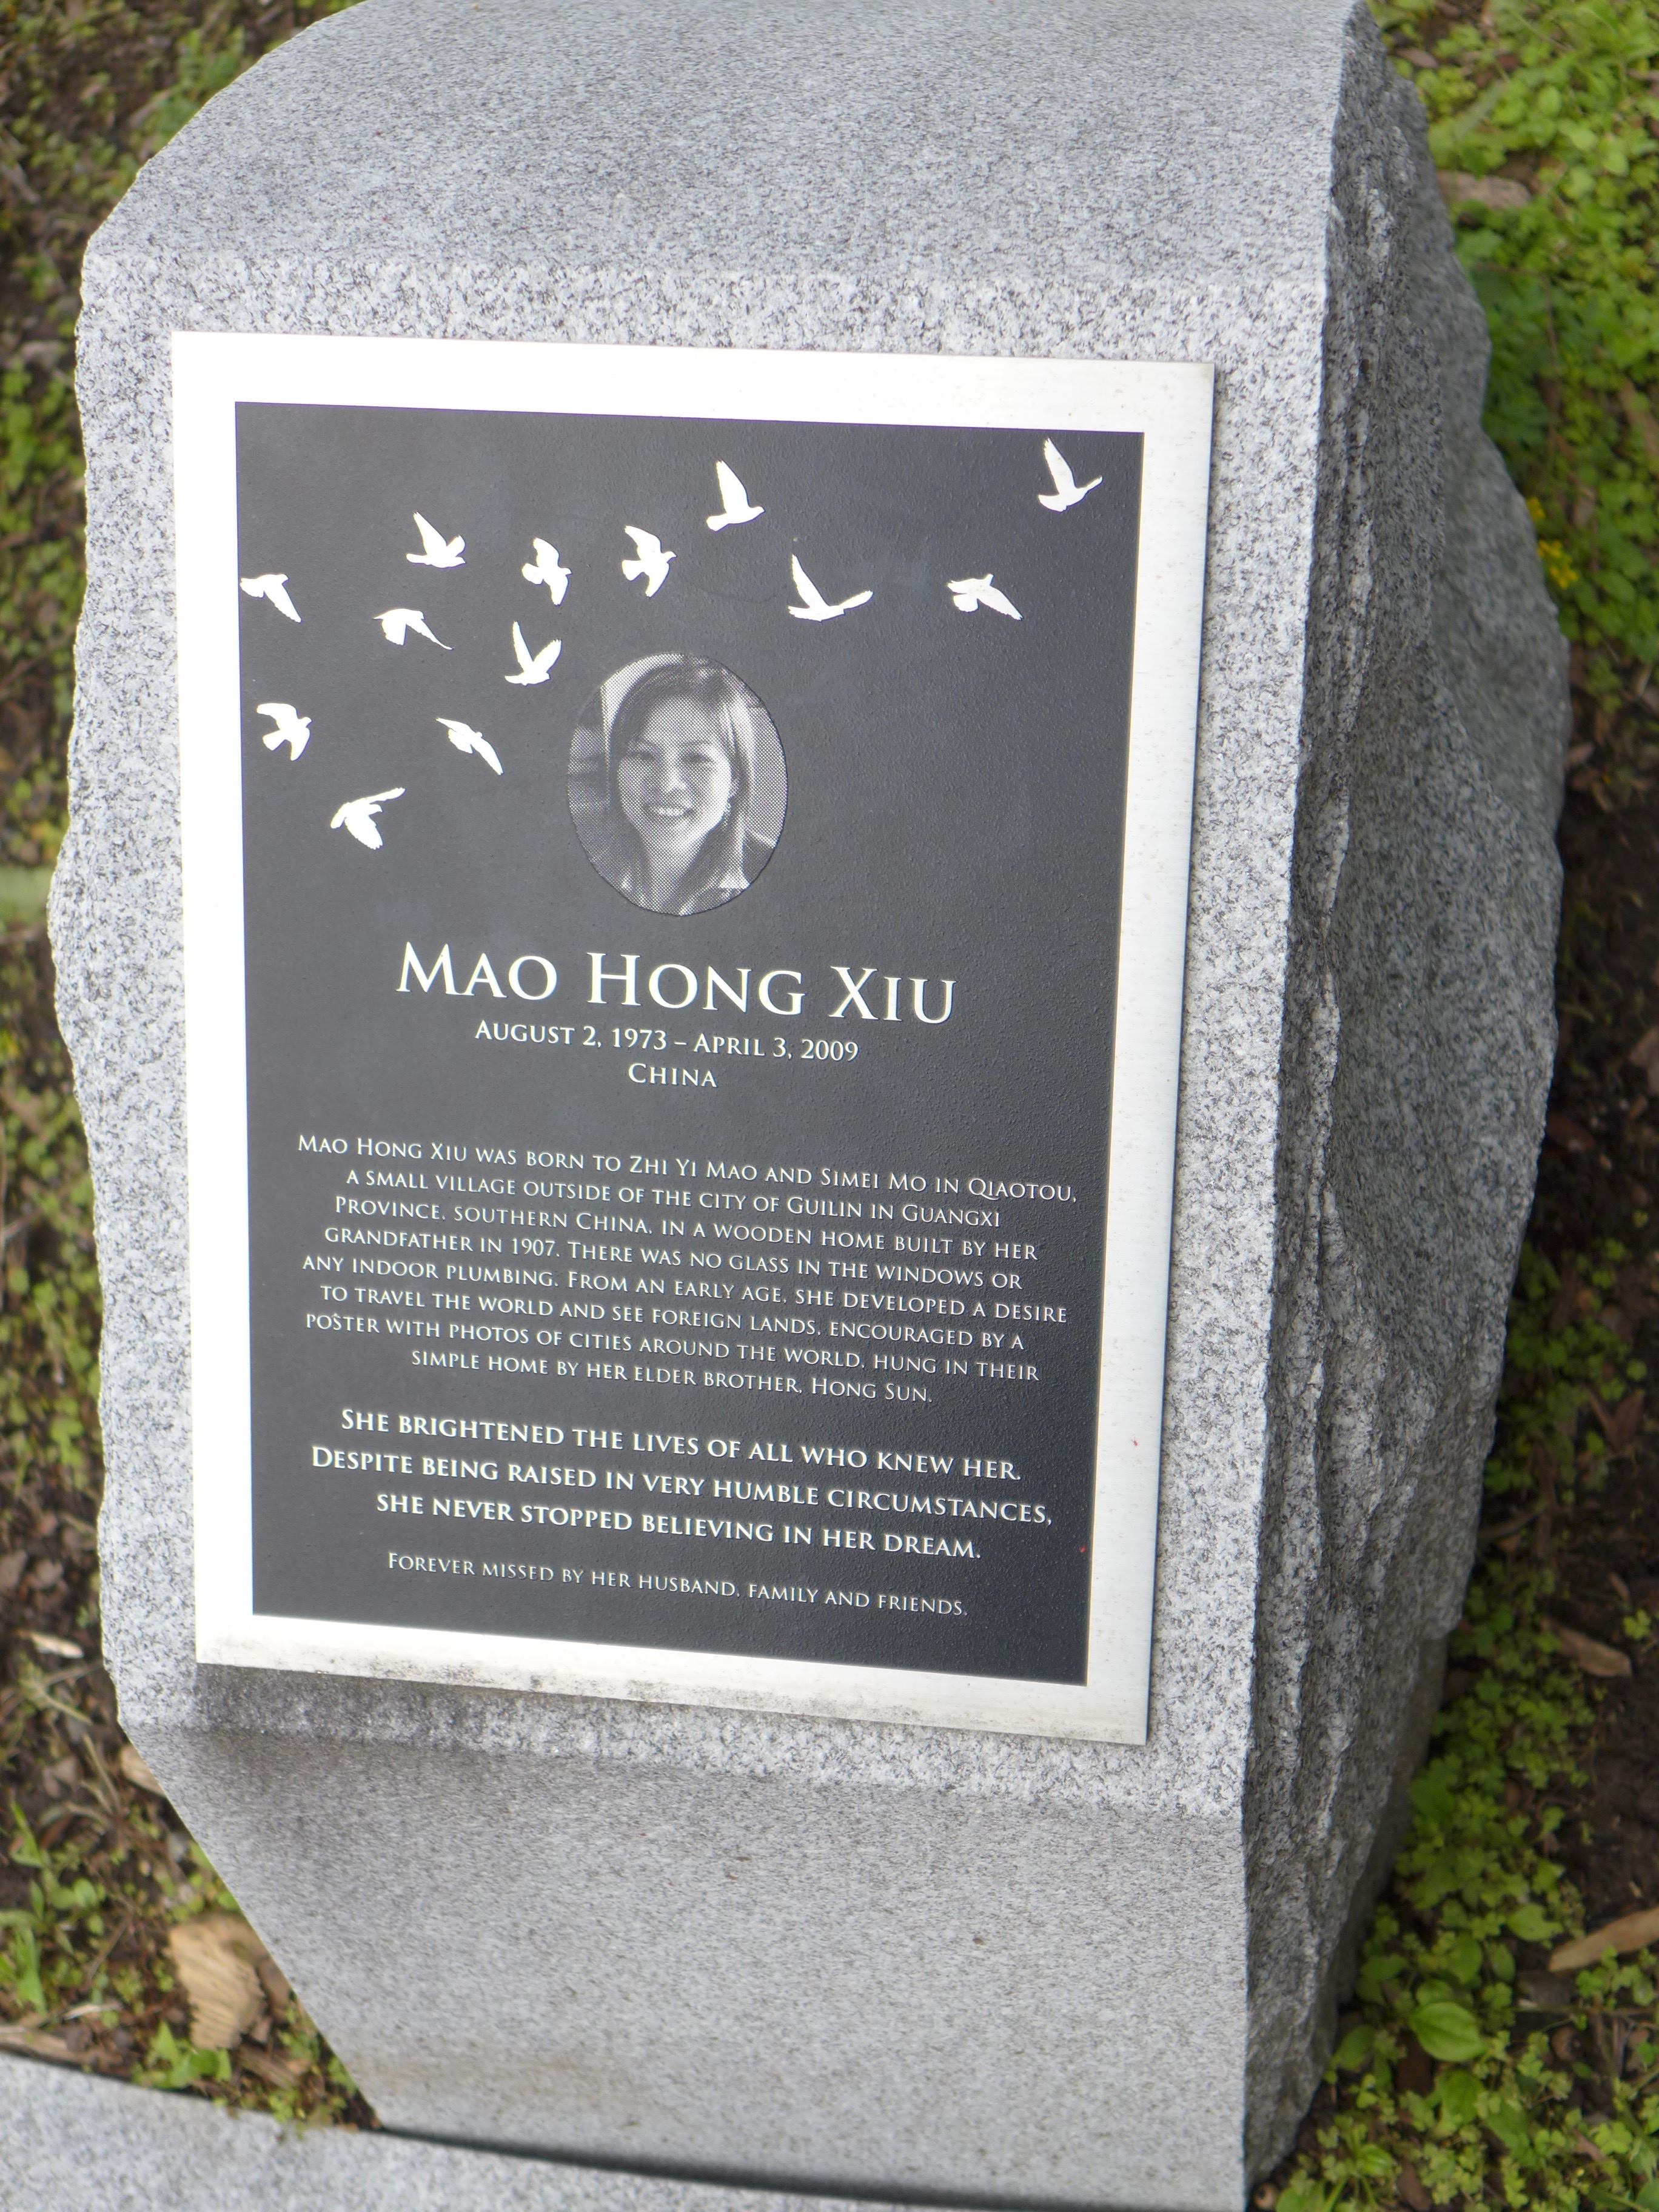 Memorial stone: Mao Hong Xiu / China